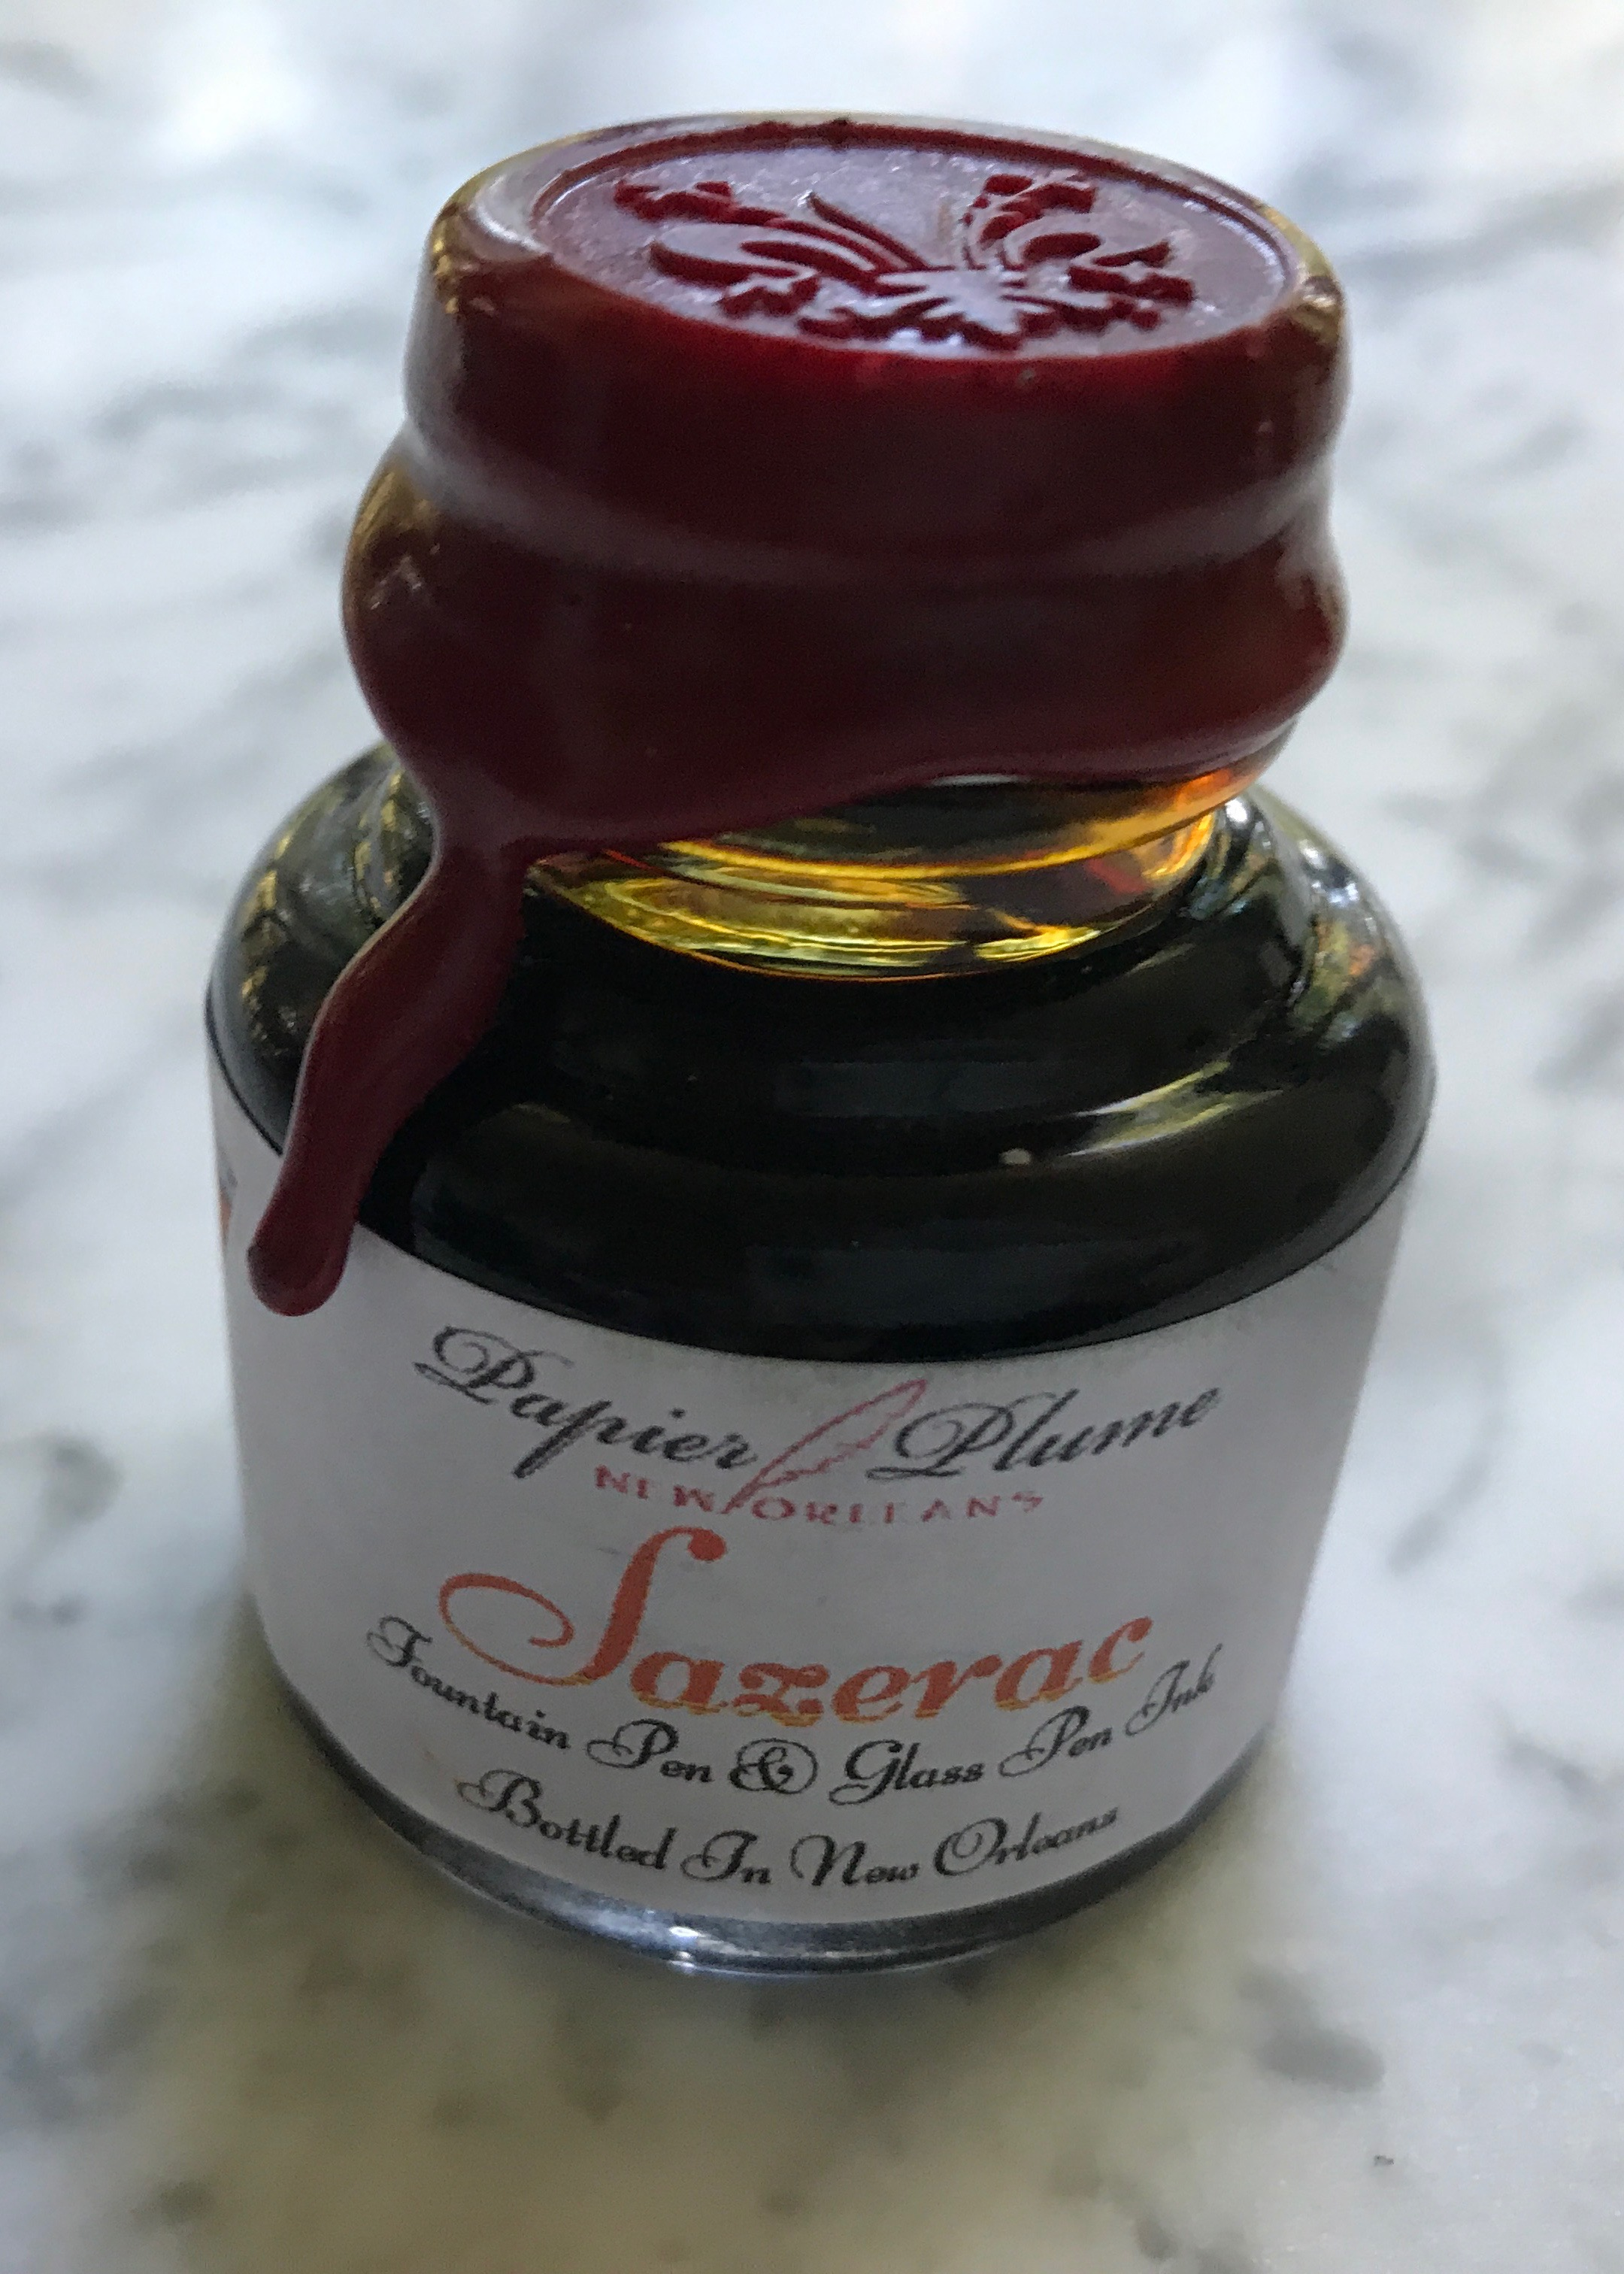 The bottle: - The bottle is glass with a metal lid, with a wax seal attached to the lid. The bottle is 30 ml of ink.